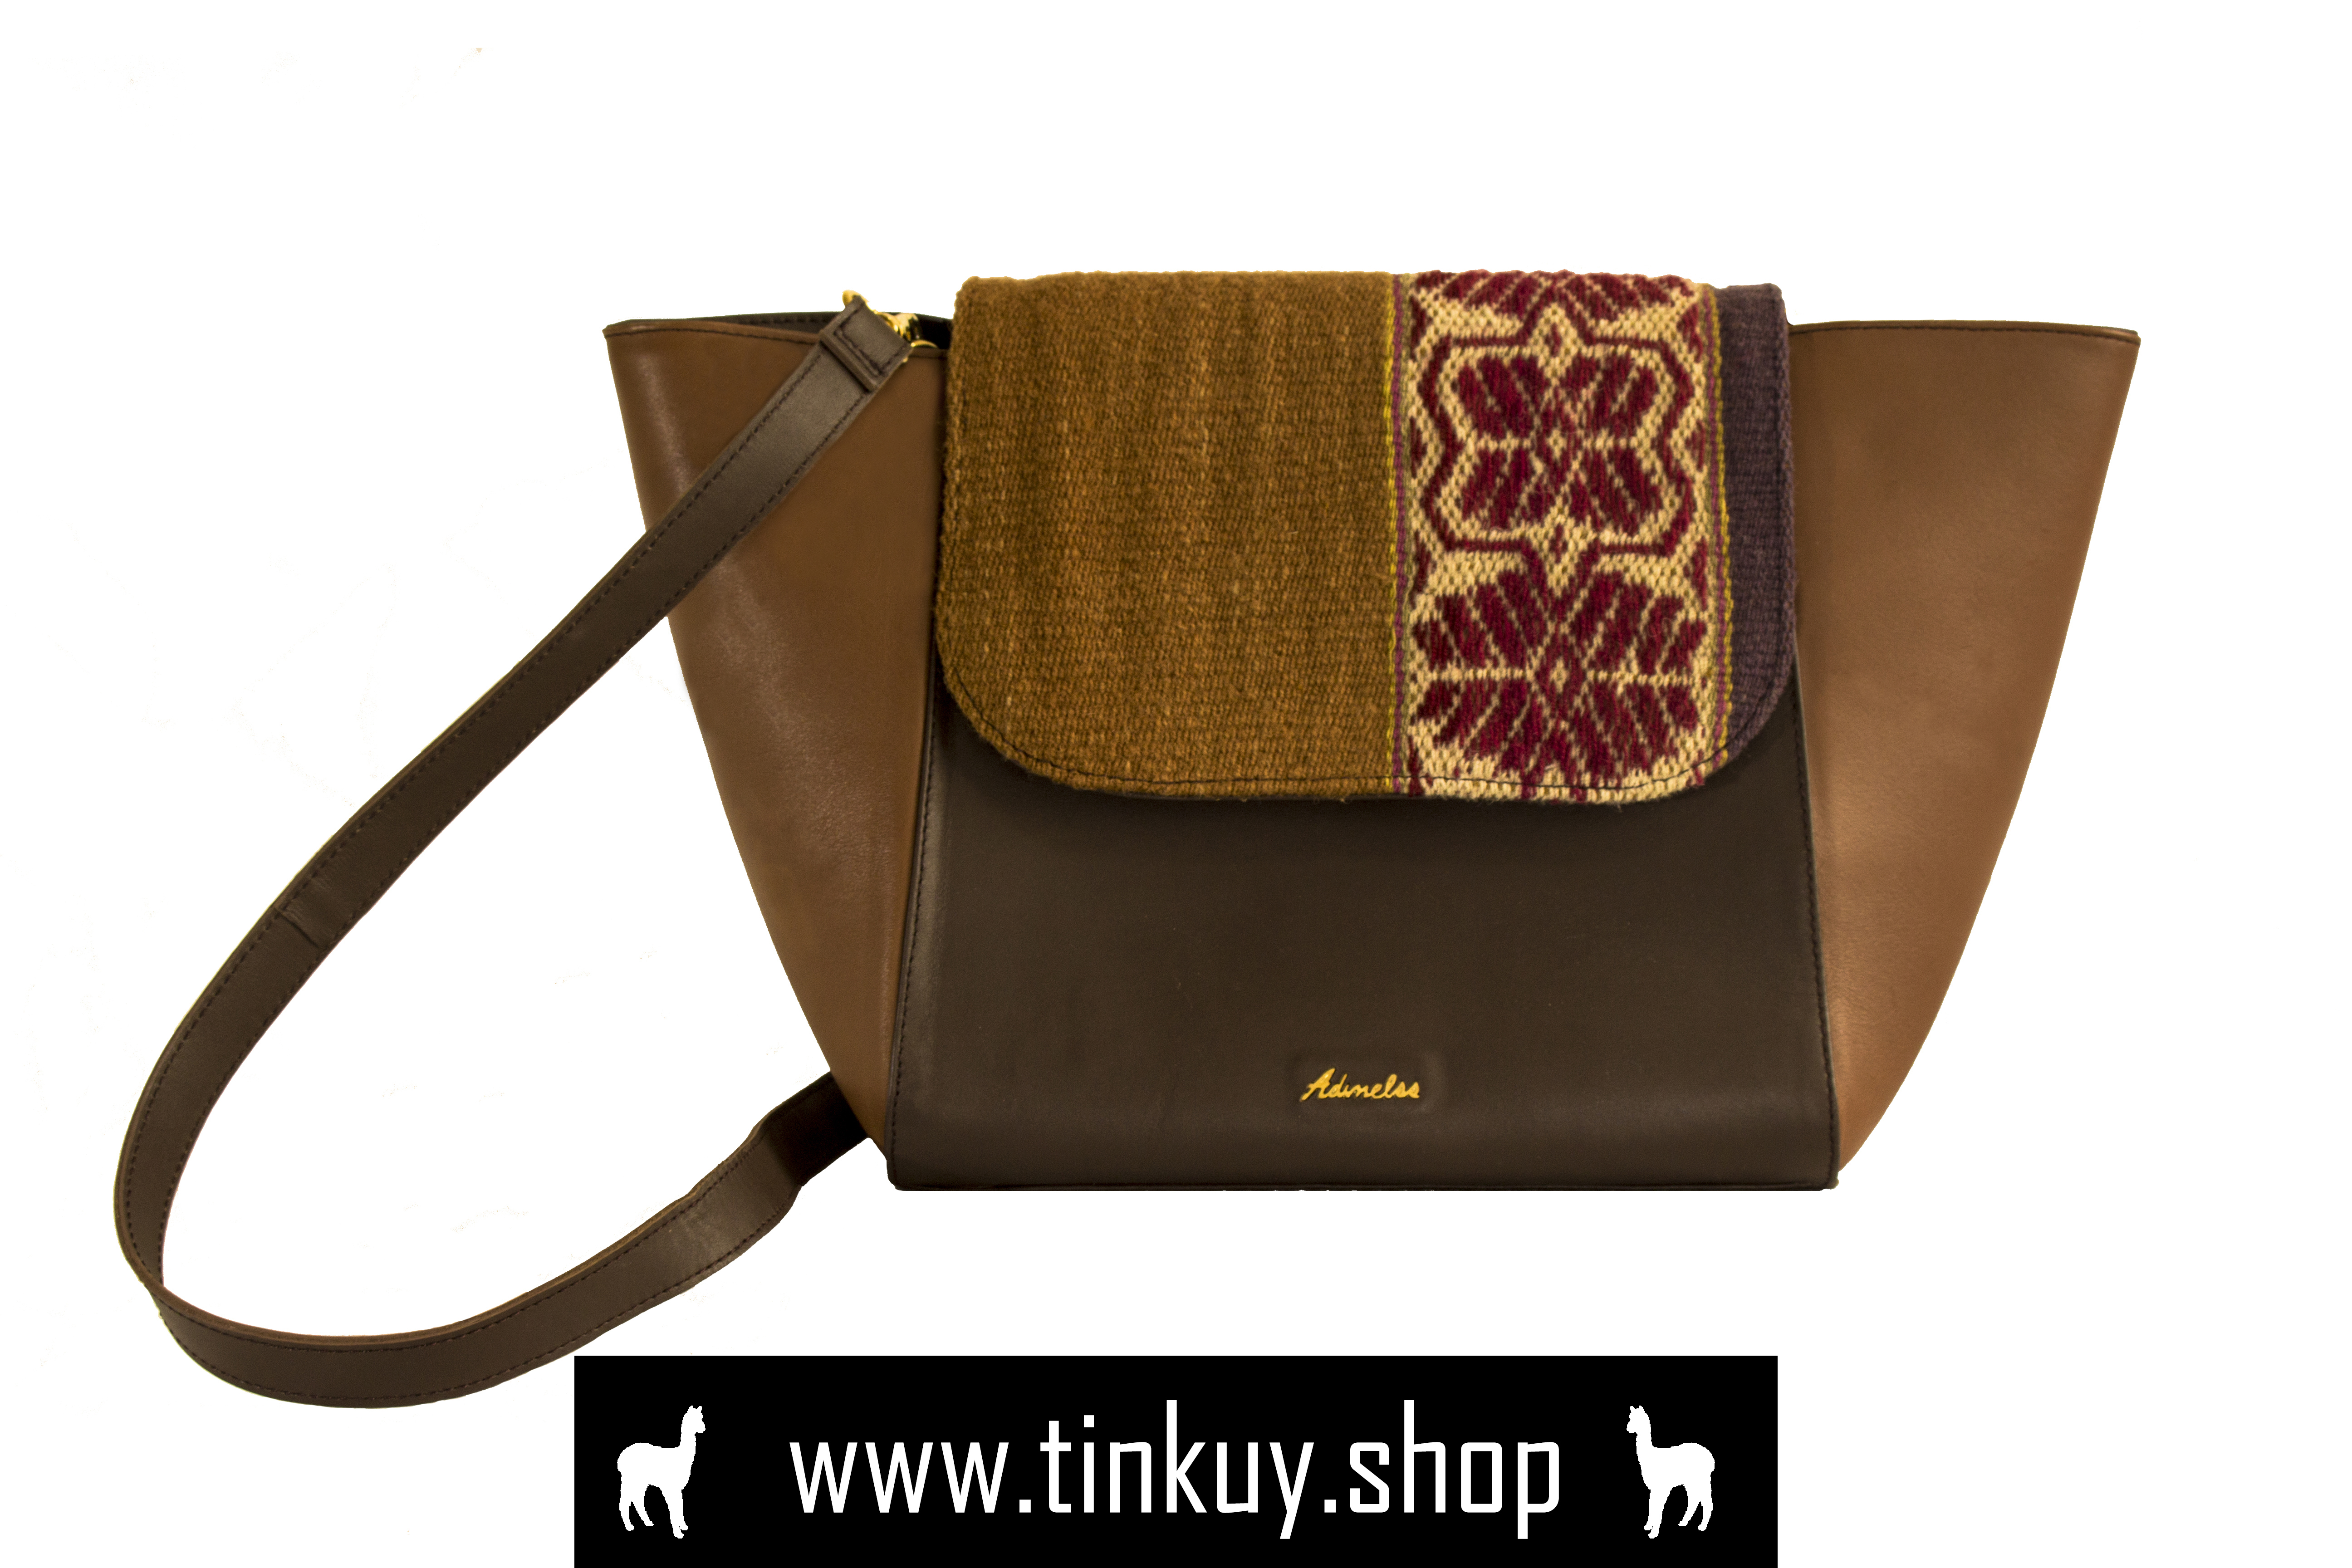 bag leather bag fabric cap detail crafted leather shoulder bag unique product peruvian design beautiful color combination combinable shoulder bag leather bags for women handmade embroidery handmade bag